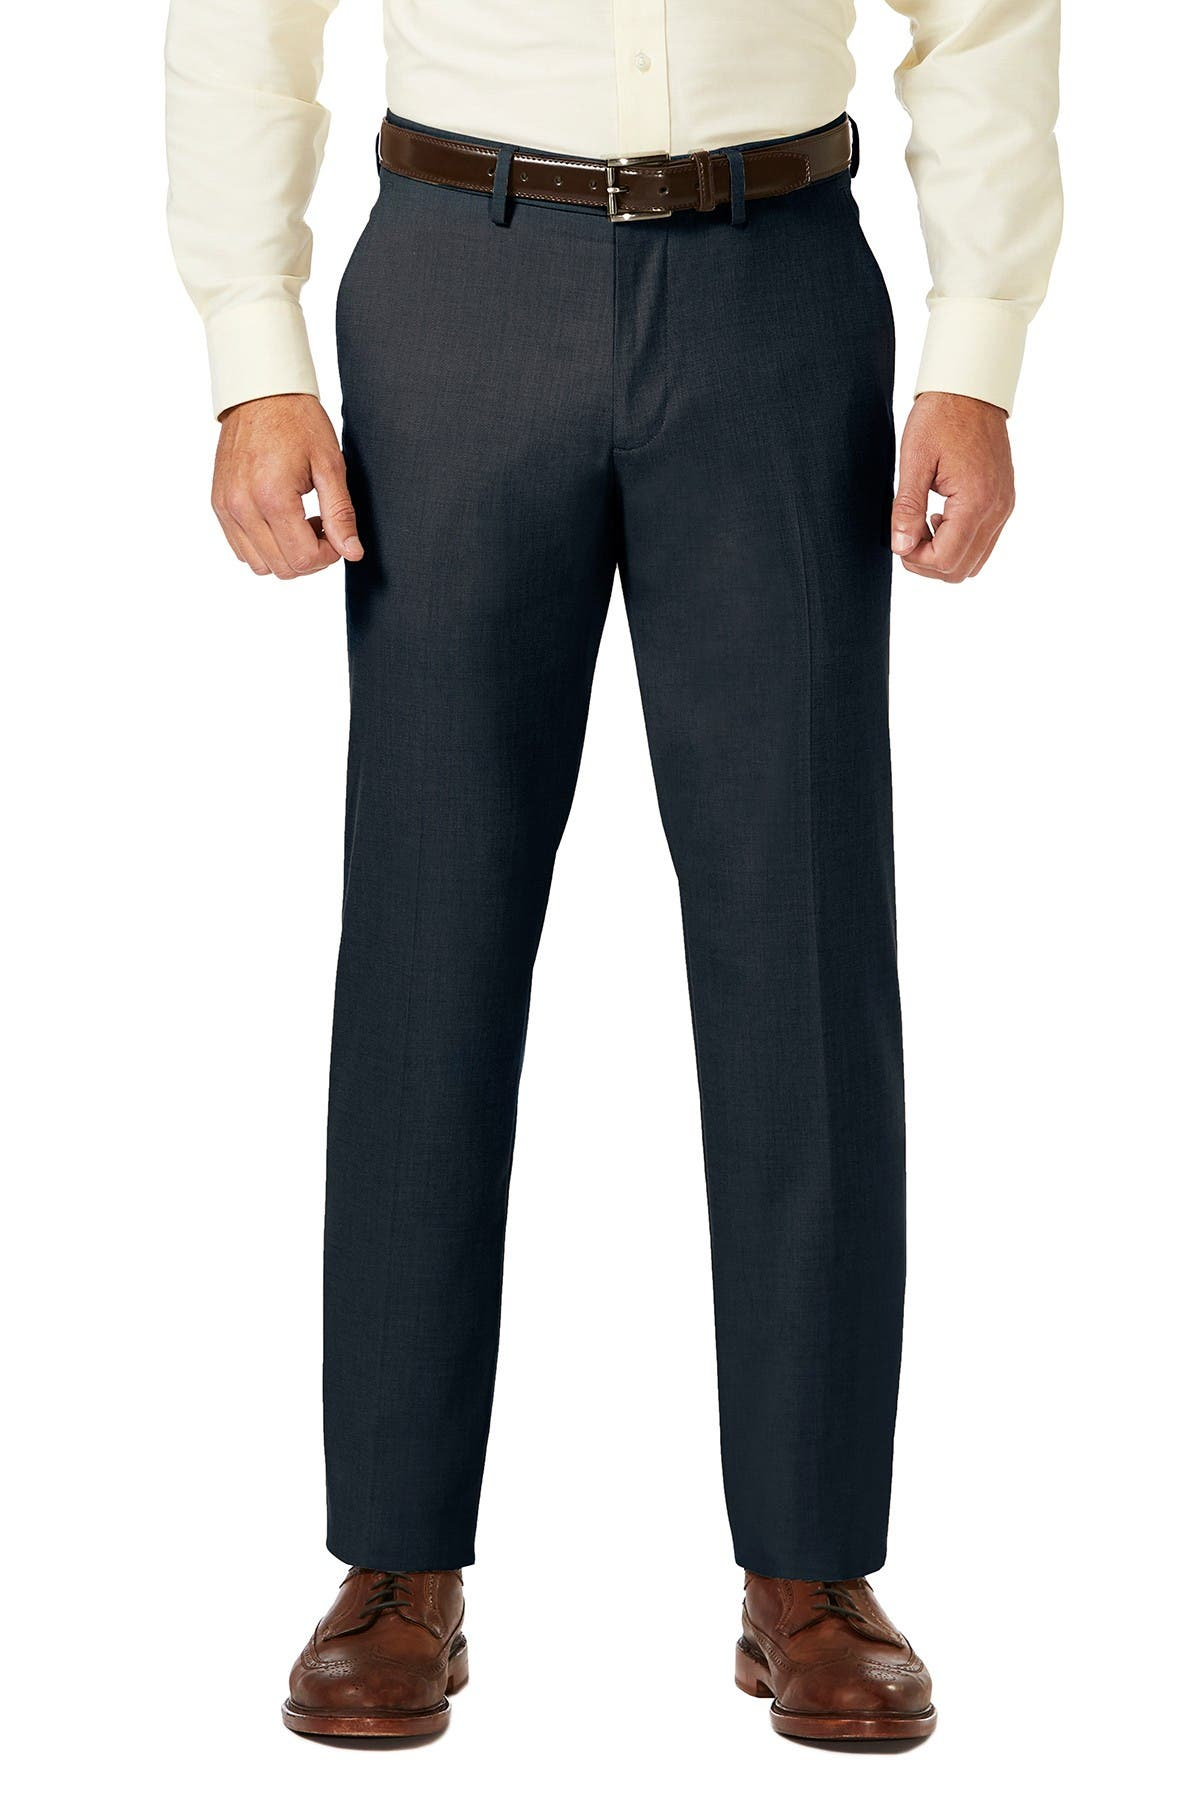 "Image of HAGGAR Sharkskin Stretch Straight Fit Flat Front Dress Pants - 29-34"" Inseam"